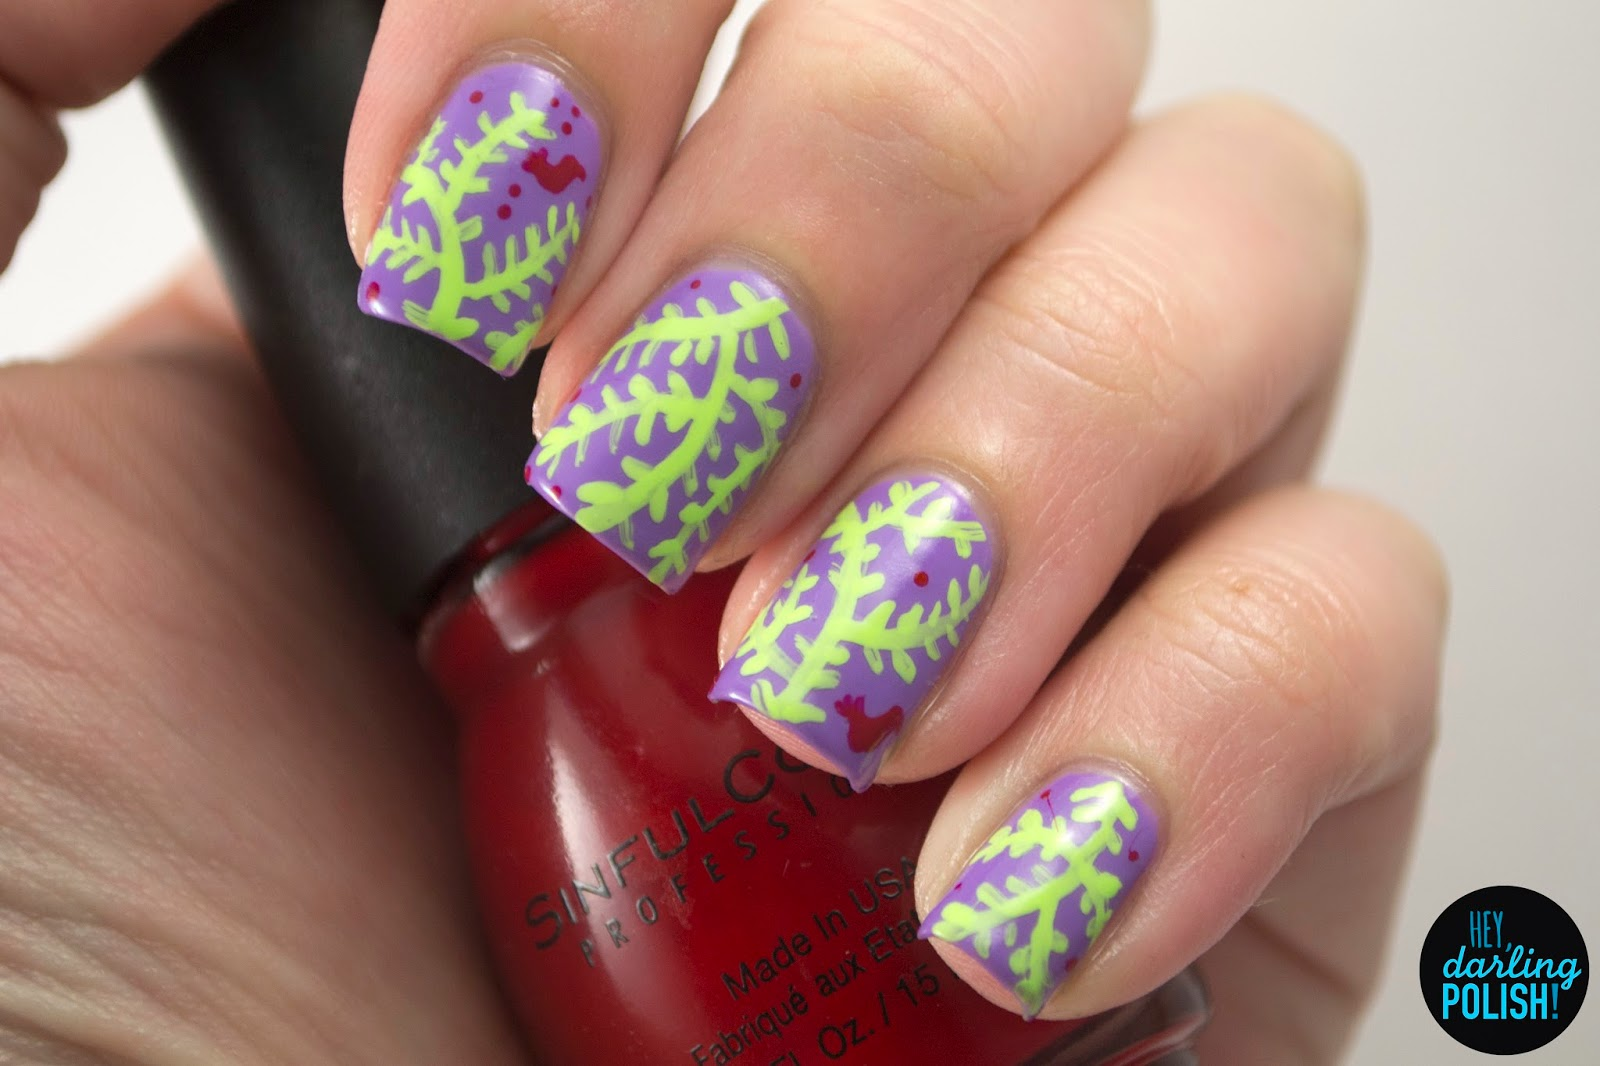 nails, nail art, nail polish, polish, pattern, hey darling polish, tri polish challenge, tpc, purple, green, red, birds